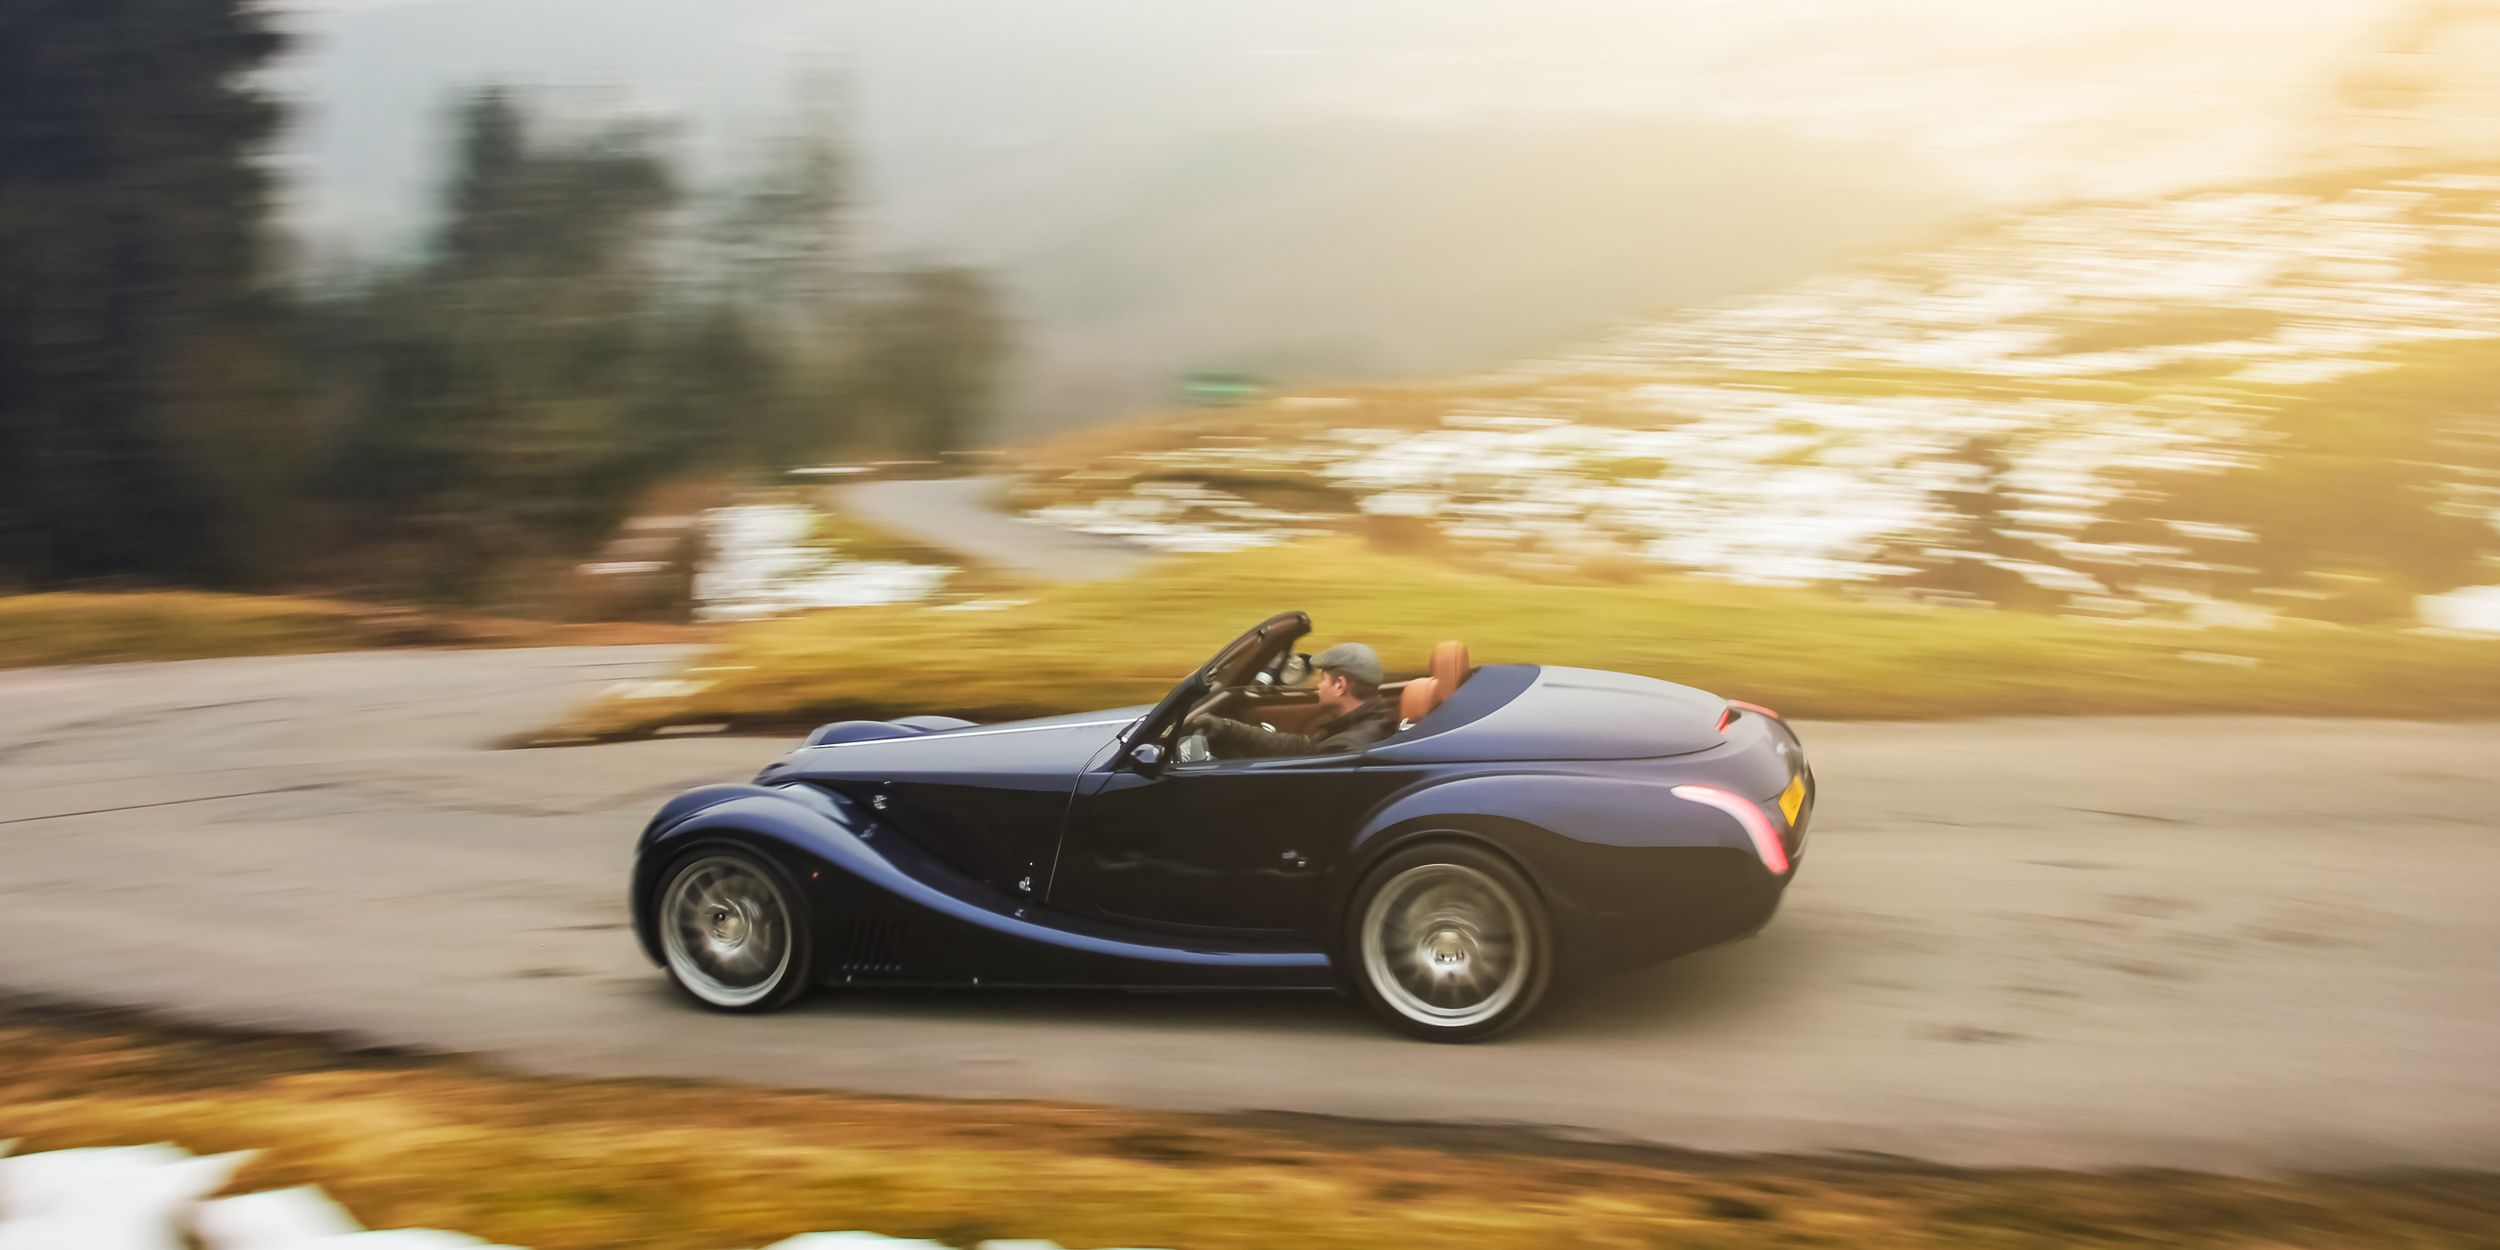 """<p>The Aero 8 brings vintage looks to a modern day car. You can just see it on a film noir set, with the femme fatale leaning against its elegant fender, smoking a cigarette from a holder. At last year's Geneva Auto Show, <a href=""""http://www.roadandtrack.com/car-shows/geneva-auto-show/news/a25171/2015-morgan-aero-8-first-look/"""">Morgan said that it would</a> make a new-generation car. Let's hope that the new car will hit on those vintage notes like the Aero 8 does.</p>"""